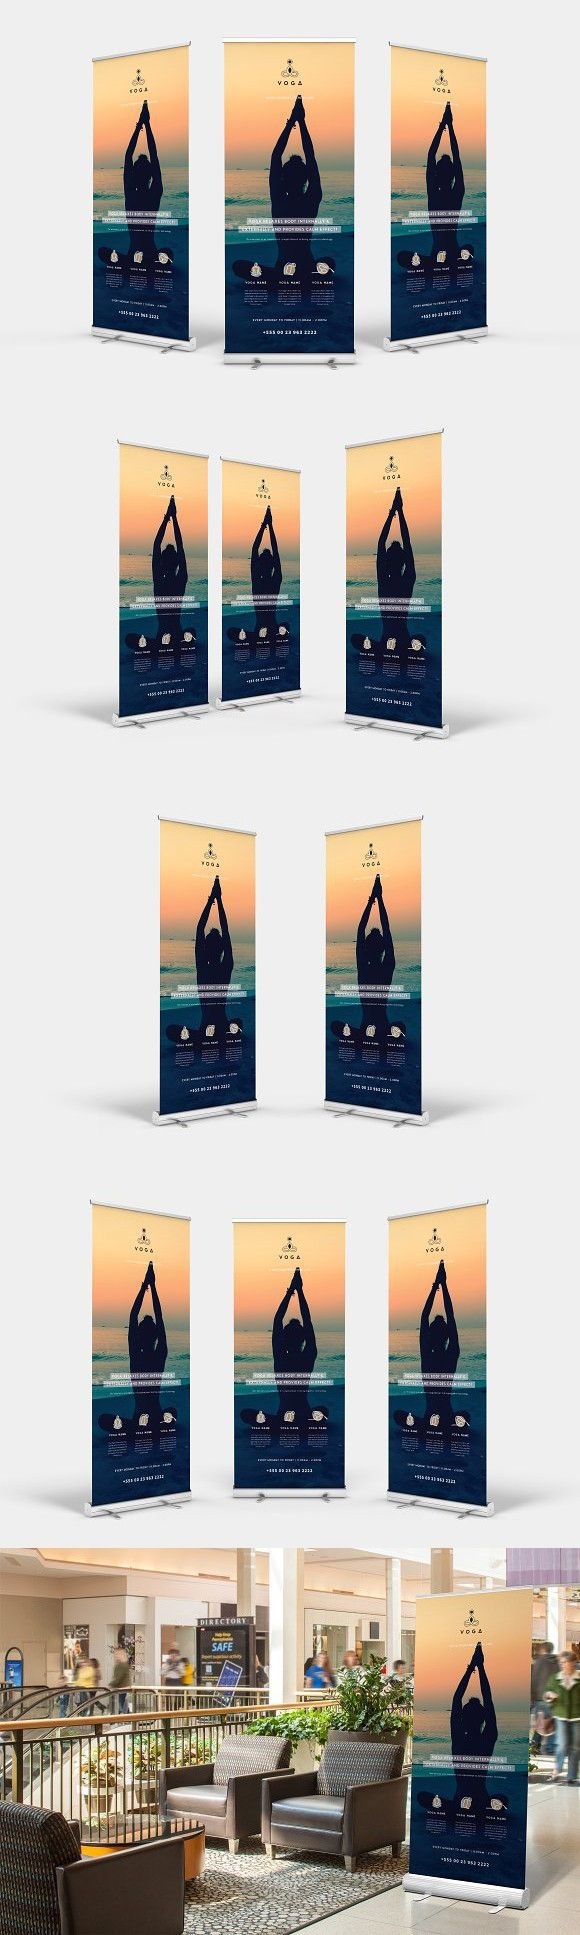 Yoga Roll-up Banner. Stationery Templates